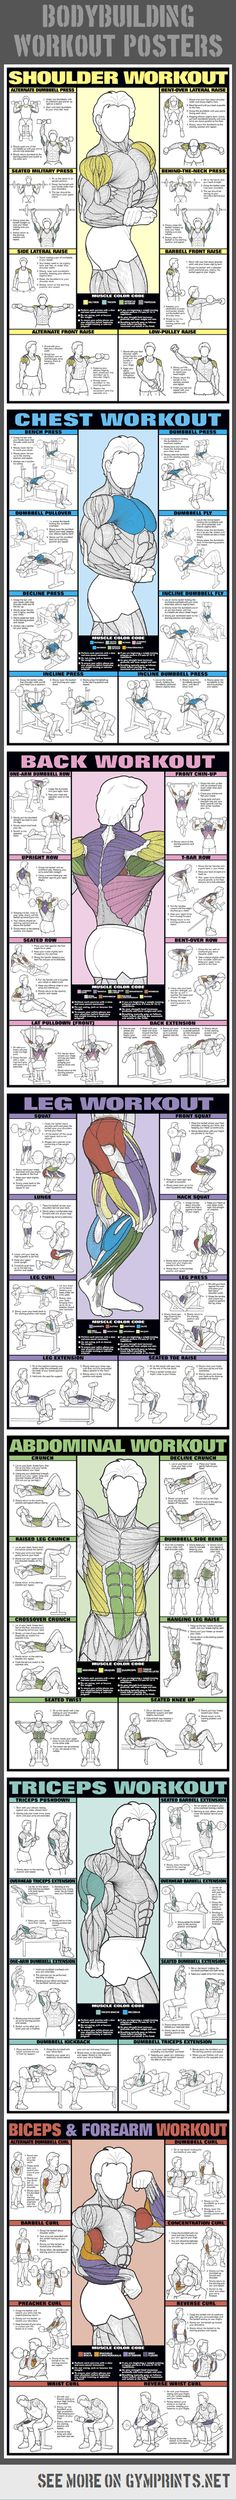 Bodybuilding workouts per bodypart - Wall Charts / Posters. #bodybuilding #gym #workout #training